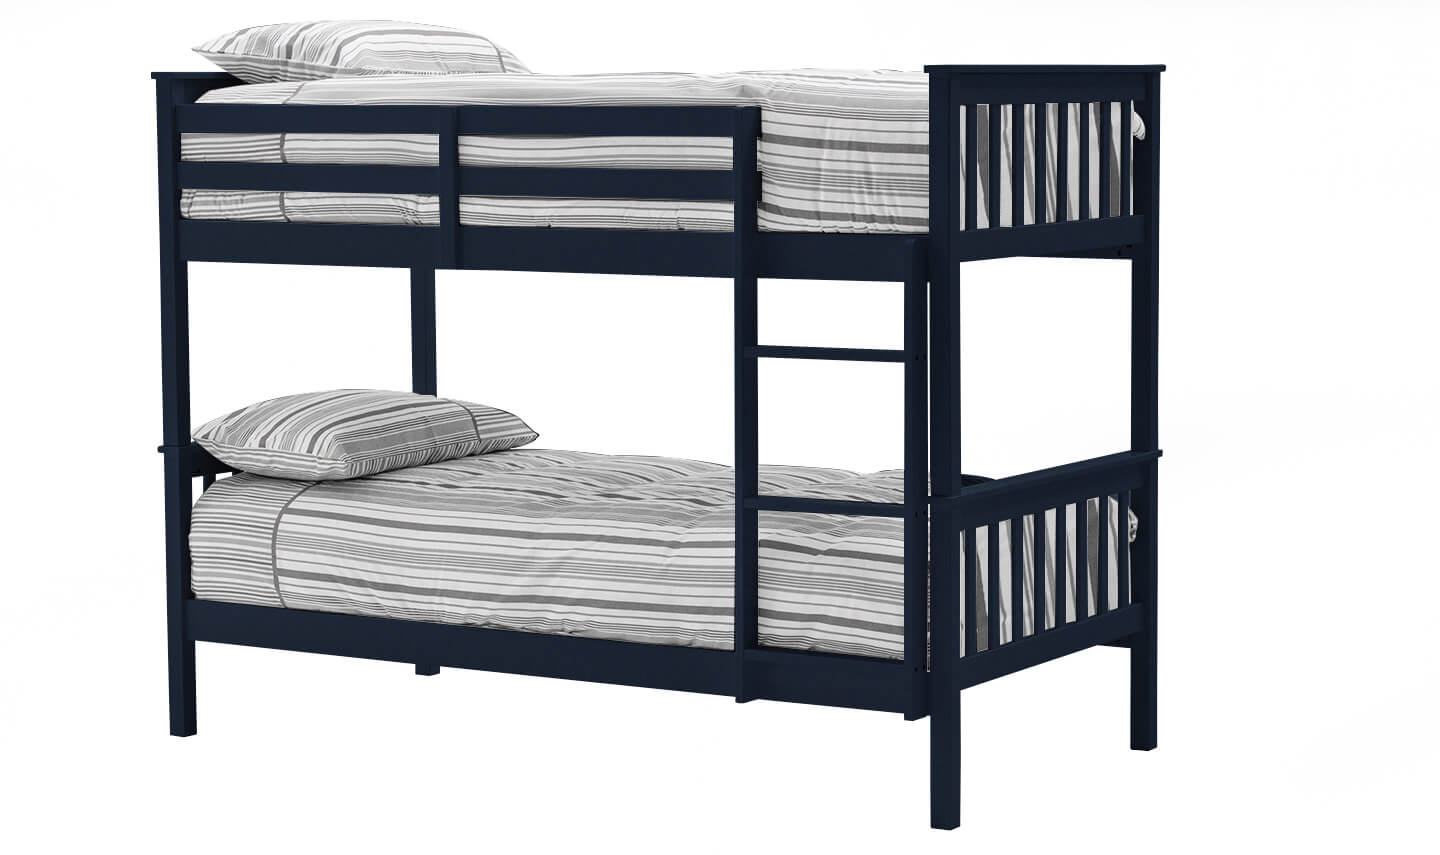 Salix Bunk Bed 3' & 3' Blue